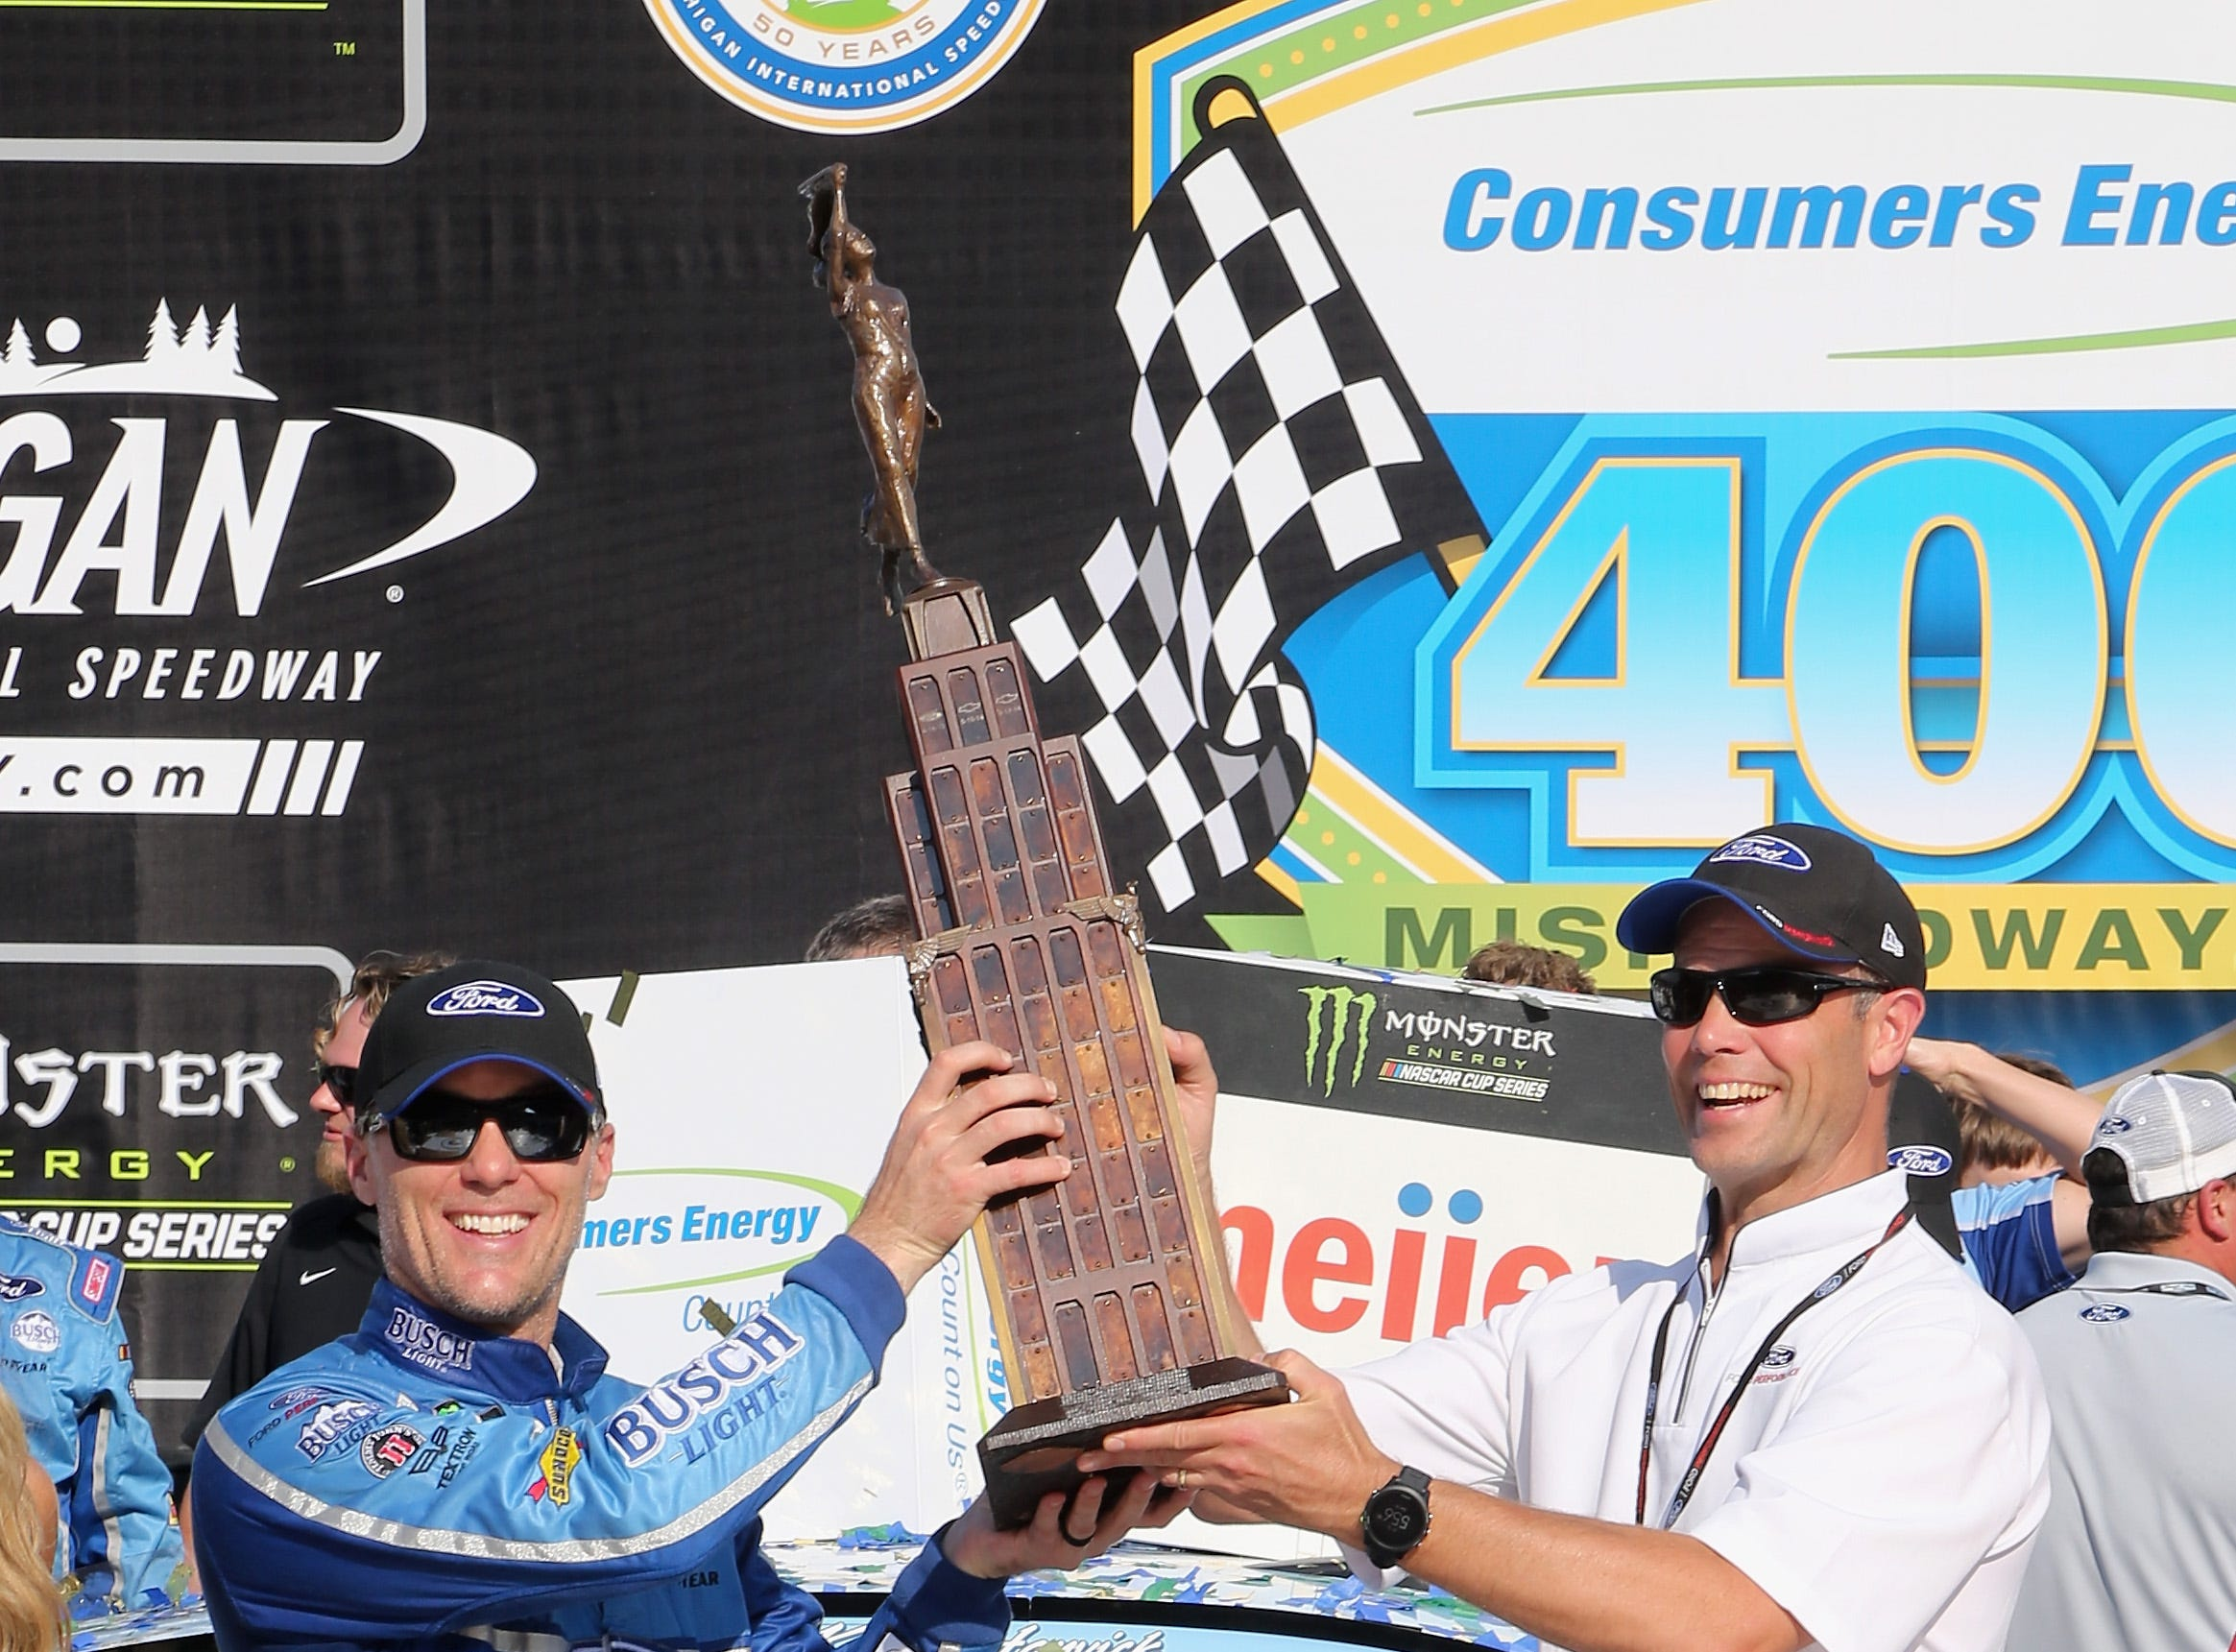 Kevin Harvick, driver of the #4 Busch Light/Mobil 1 Ford, celebrates with the trophy in Victory Lane after winning the Monster Energy NASCAR Cup Series Consmers Energy 400 at Michigan International Speedway.